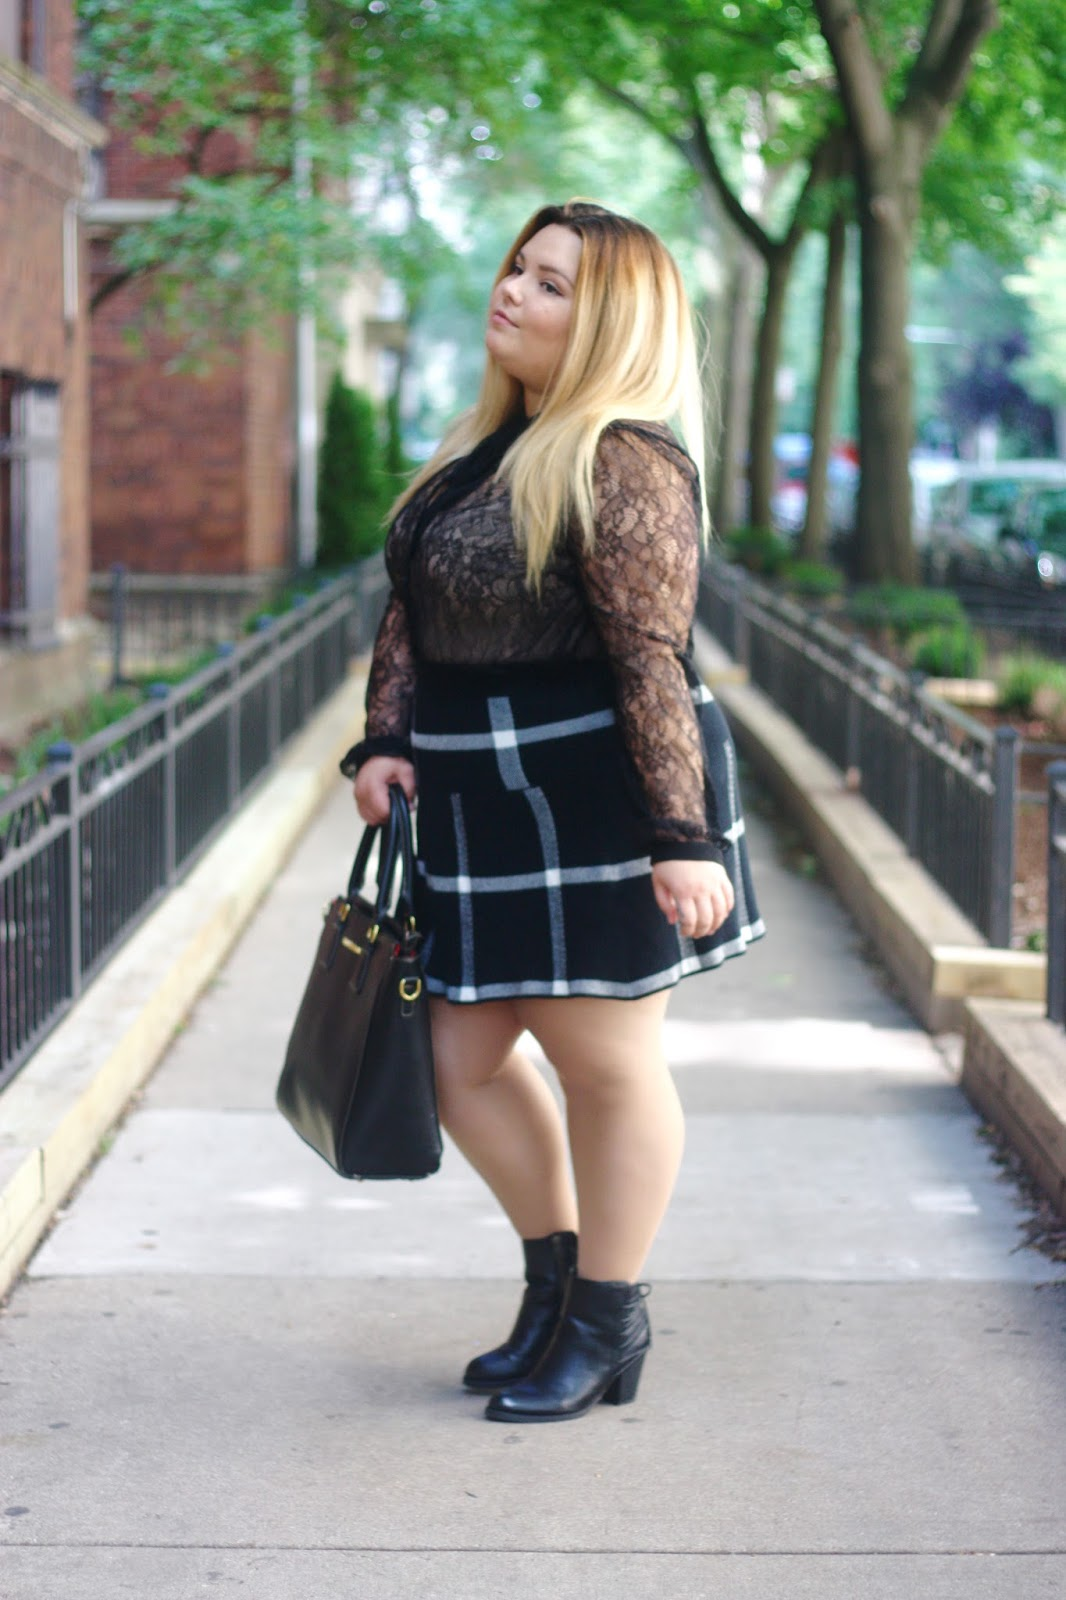 plaid skirt, plus size fashion, long sleeve lace blouse with neck tie, neck tie blouse, plus size blogger, natalie in the city, natalie craig, chicago, chicago blogger, midwest blogger, plus size fall fashion, meijer ankle boots, ankle boots for plus size women, lace top, natalieinthecity.com